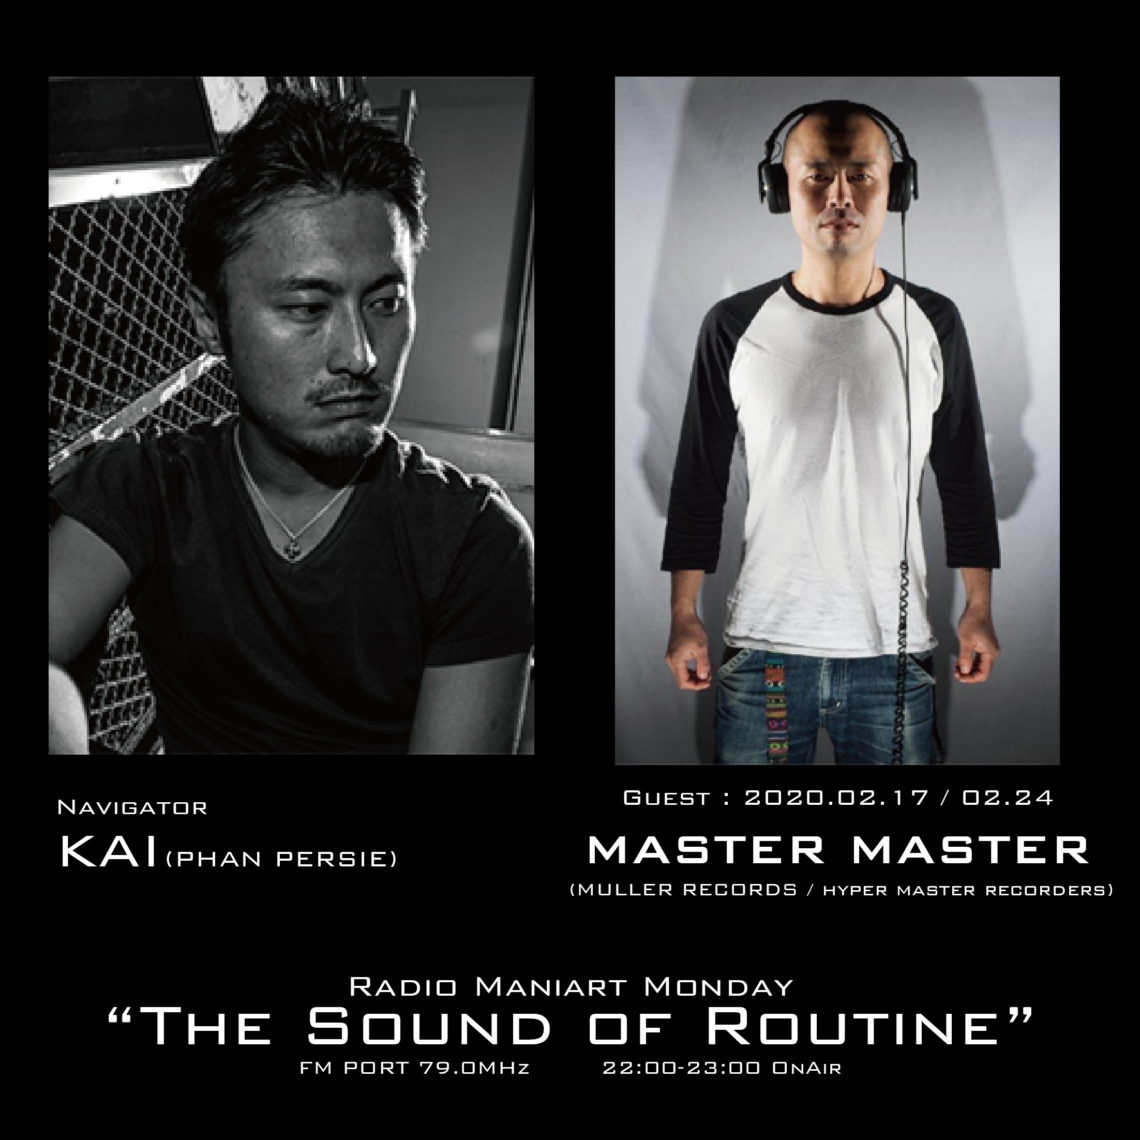 2020. 2. 17 MON, 2. 24 MON – KAI : Navigator on FM PORT / the Sound of Routine – Guest : MASTER MASTER(MULLER RECORDS / HYPER MASTER RECORDERS)